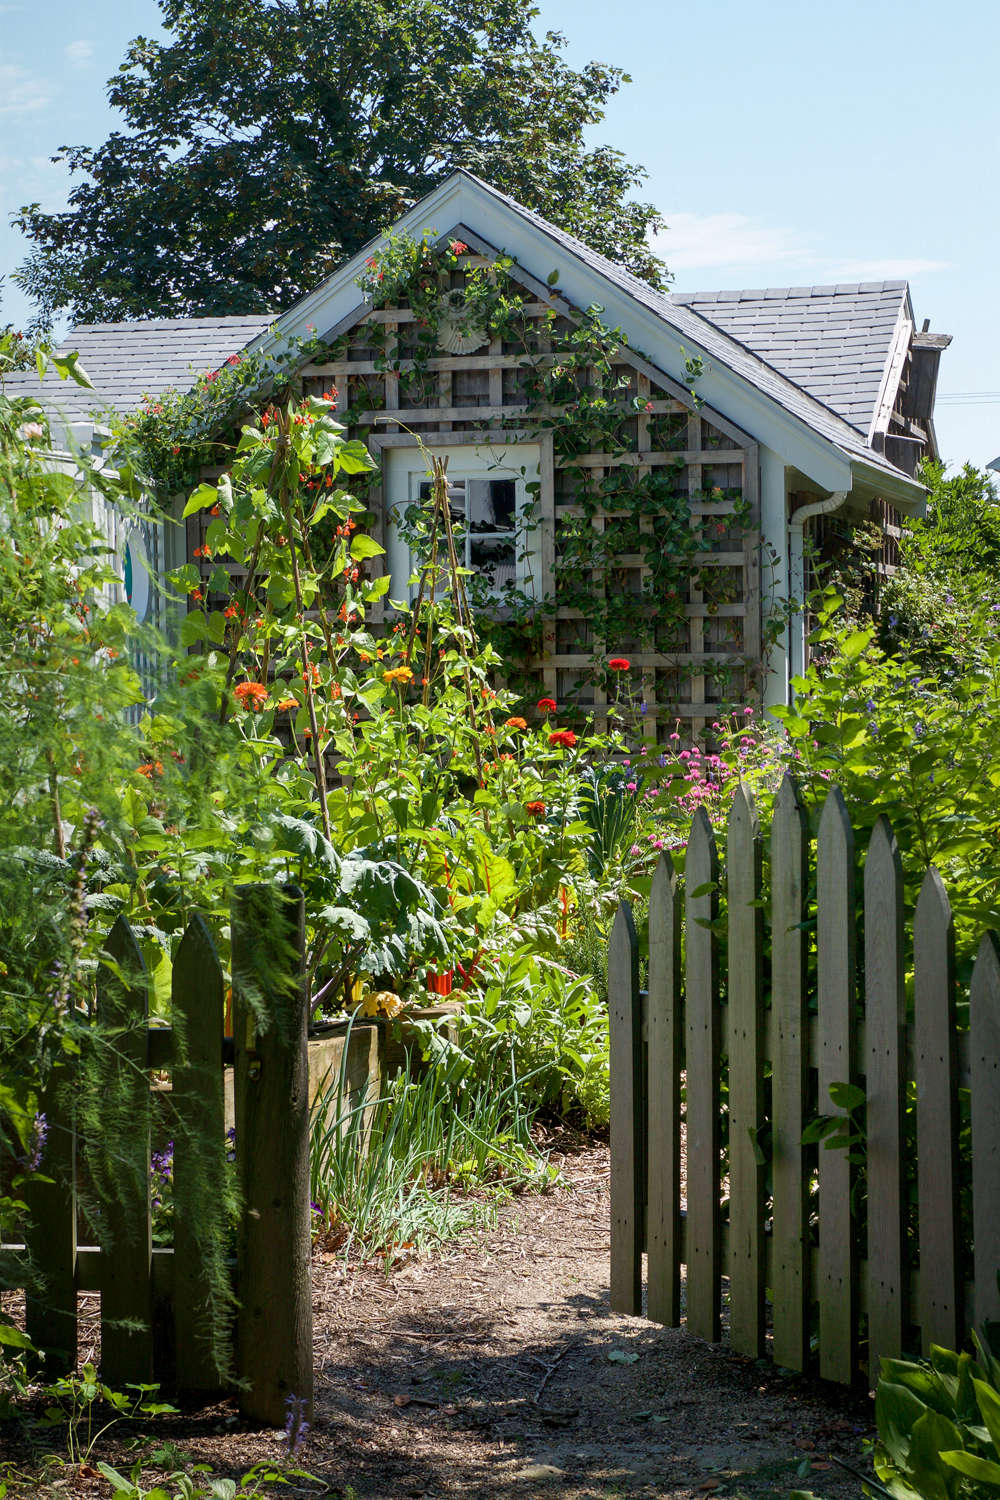 10 garden ideas to steal from provincetown on cape cod house and yard flea treatment house and yard for rent in s w wales